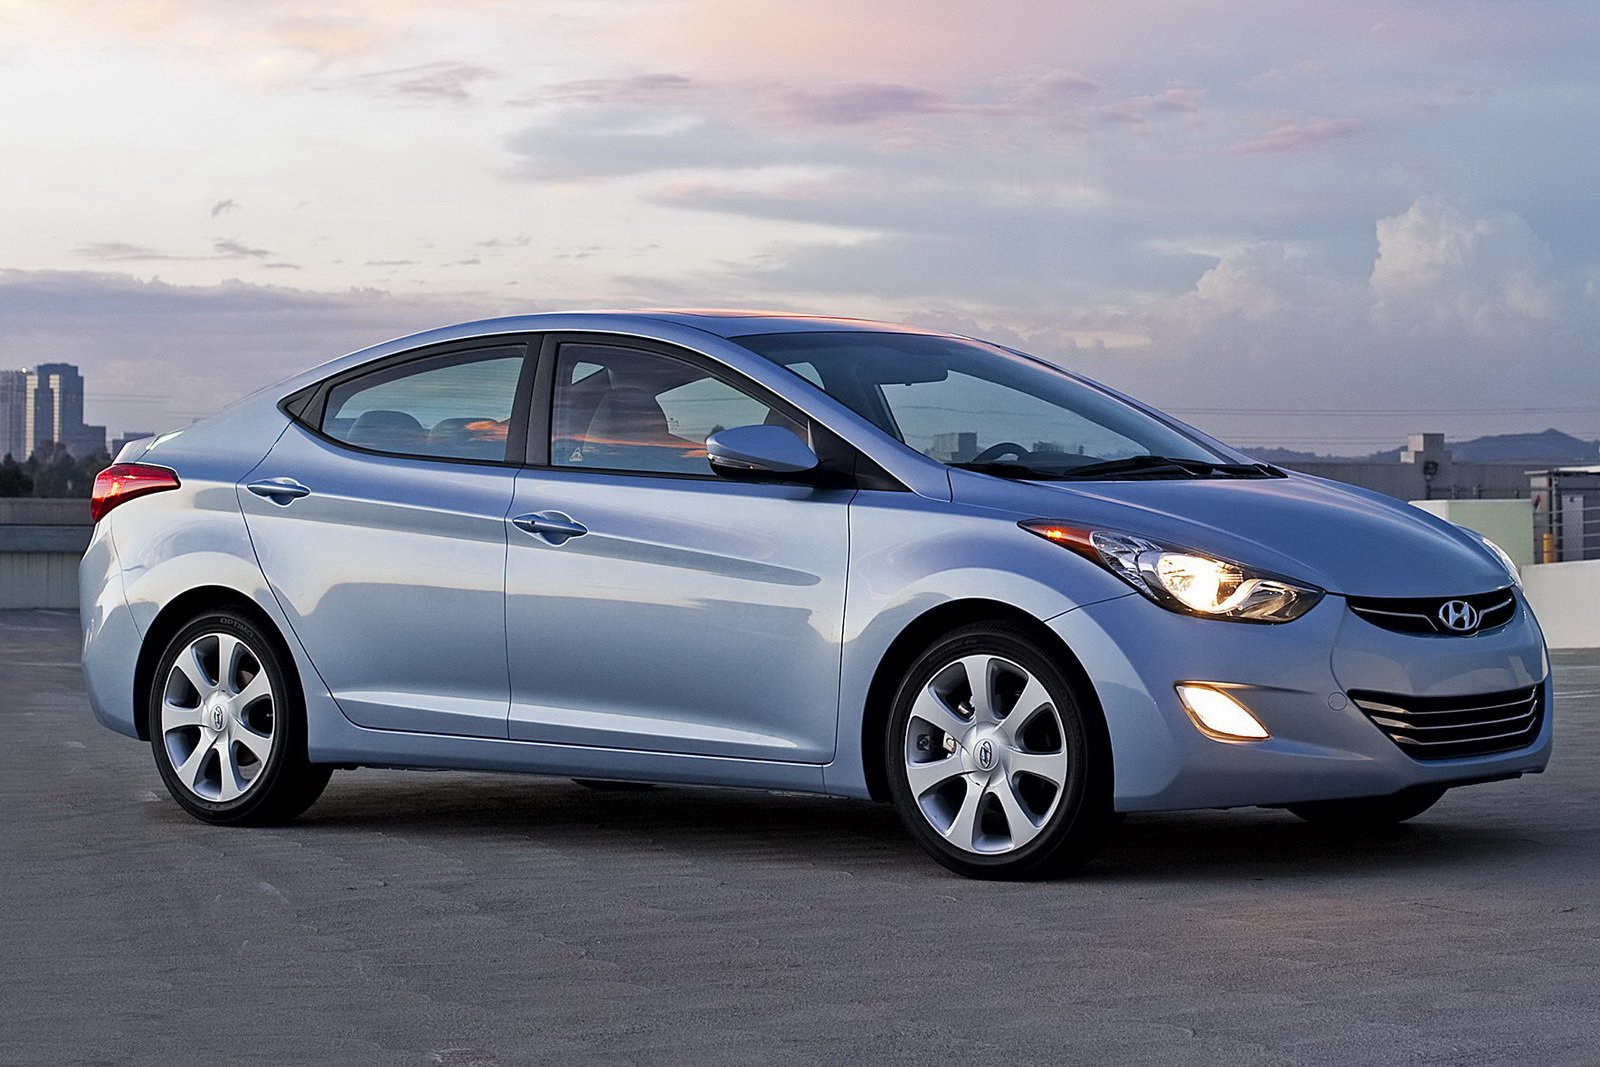 Latest World Car Wallpapers Hyundai Elantra 2012 Free Download